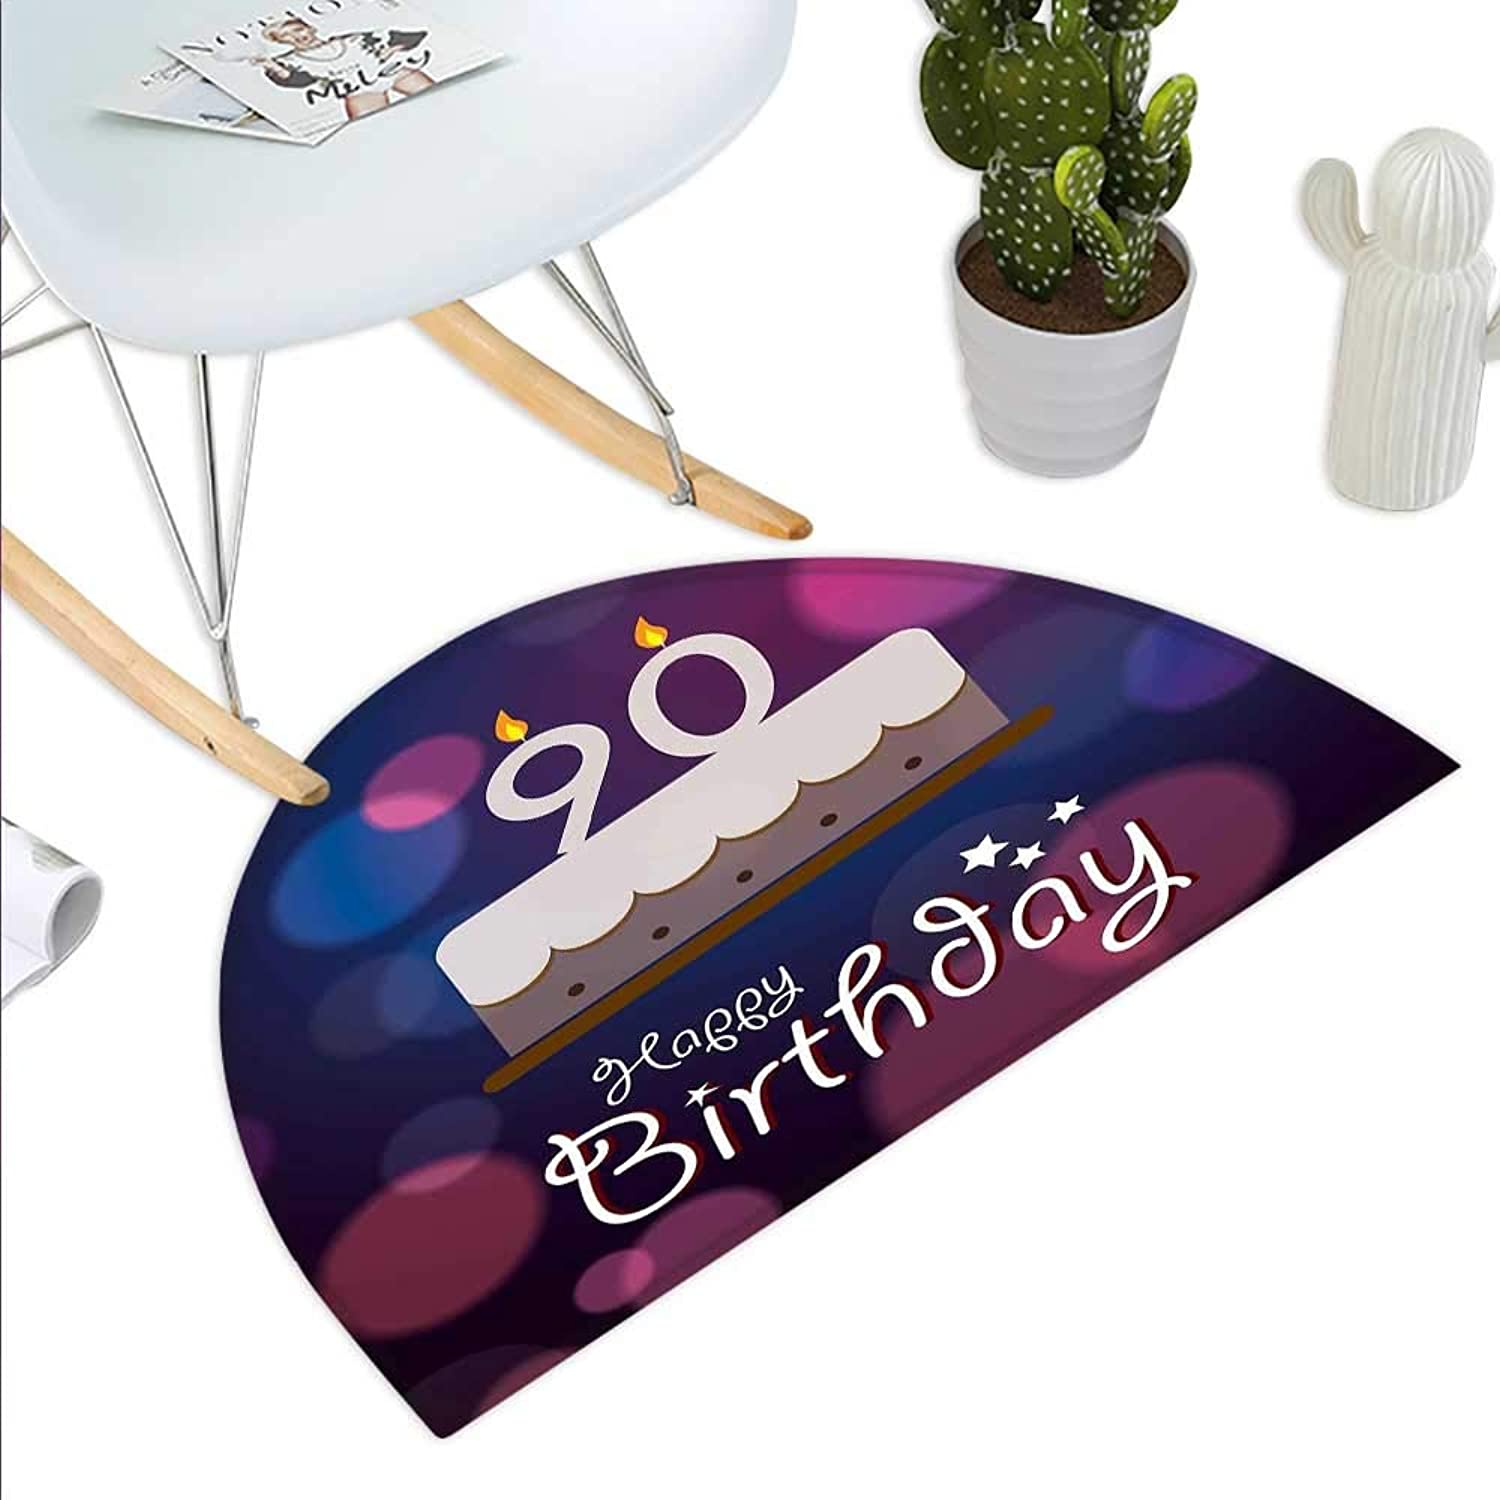 90th Birthday Semicircle Doormat Dreamy Layout with color Spots Artistic Graphic Style Tasty Cake Design Halfmoon doormats H 43.3  xD 64.9  bluee Pink White